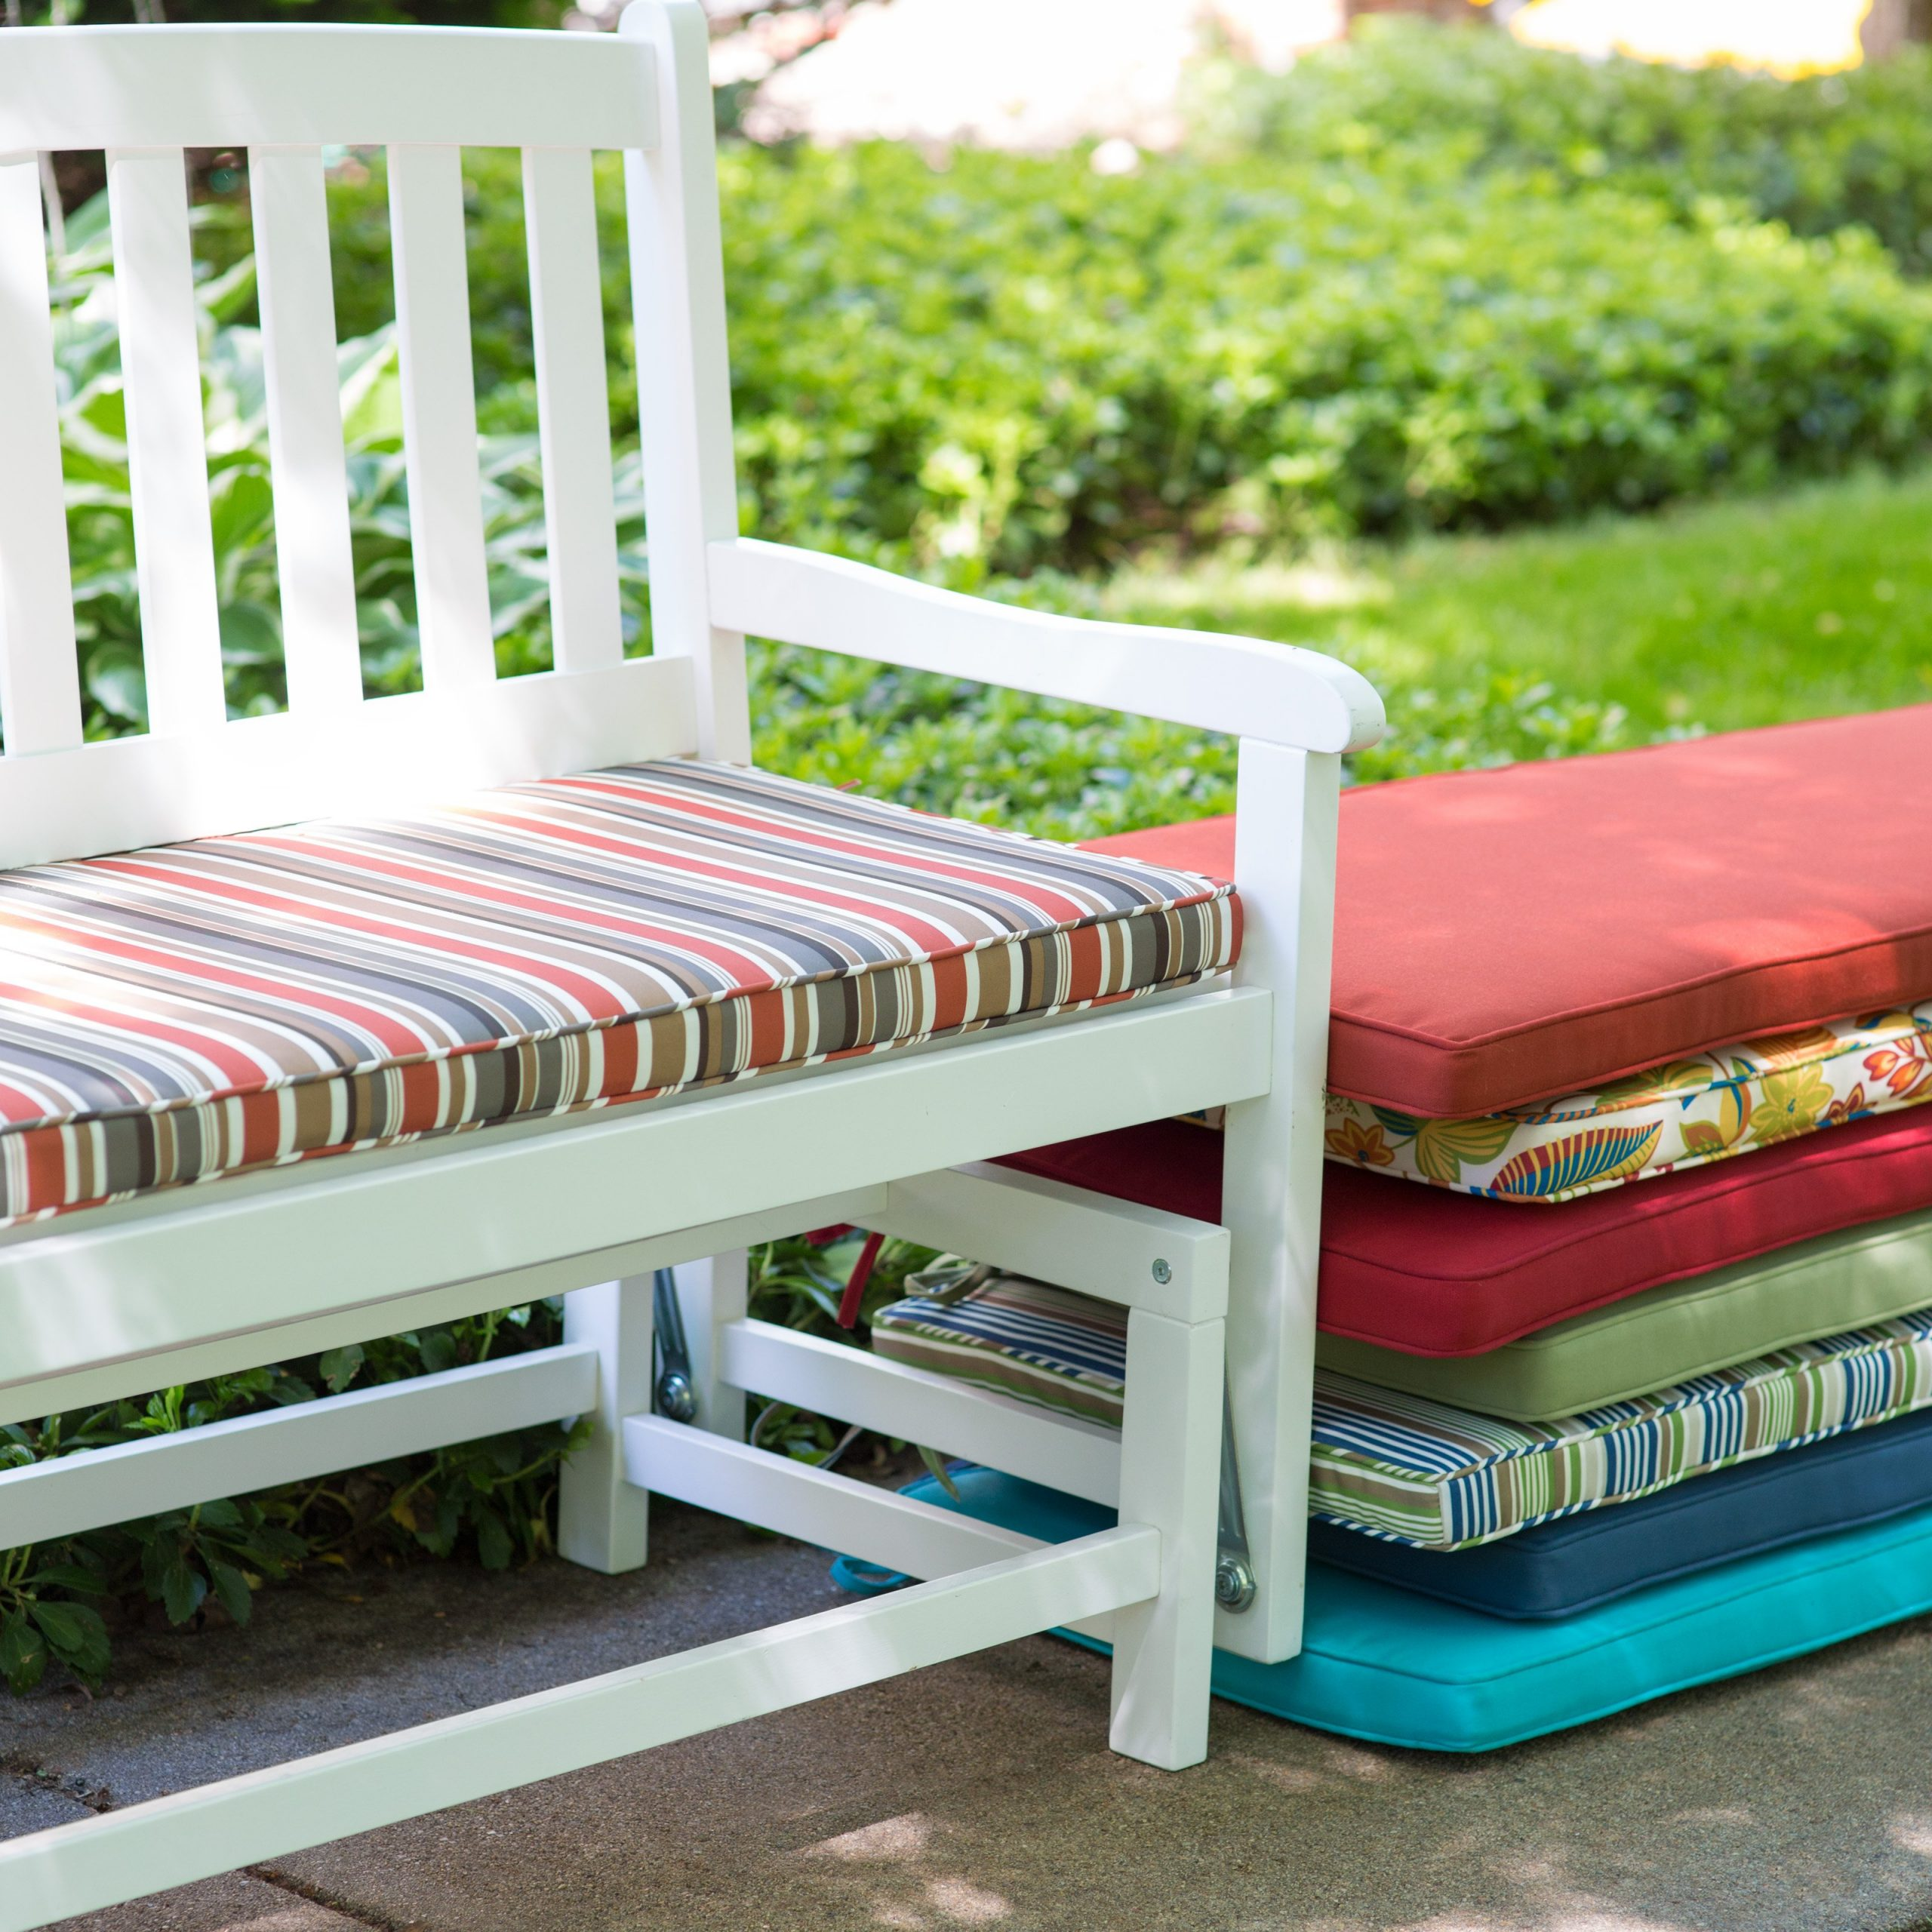 Trendy Decorating: Your Porch And Patio Never Been The Same With With Regard To Indoor/outdoor Double Glider Benches (Gallery 15 of 30)